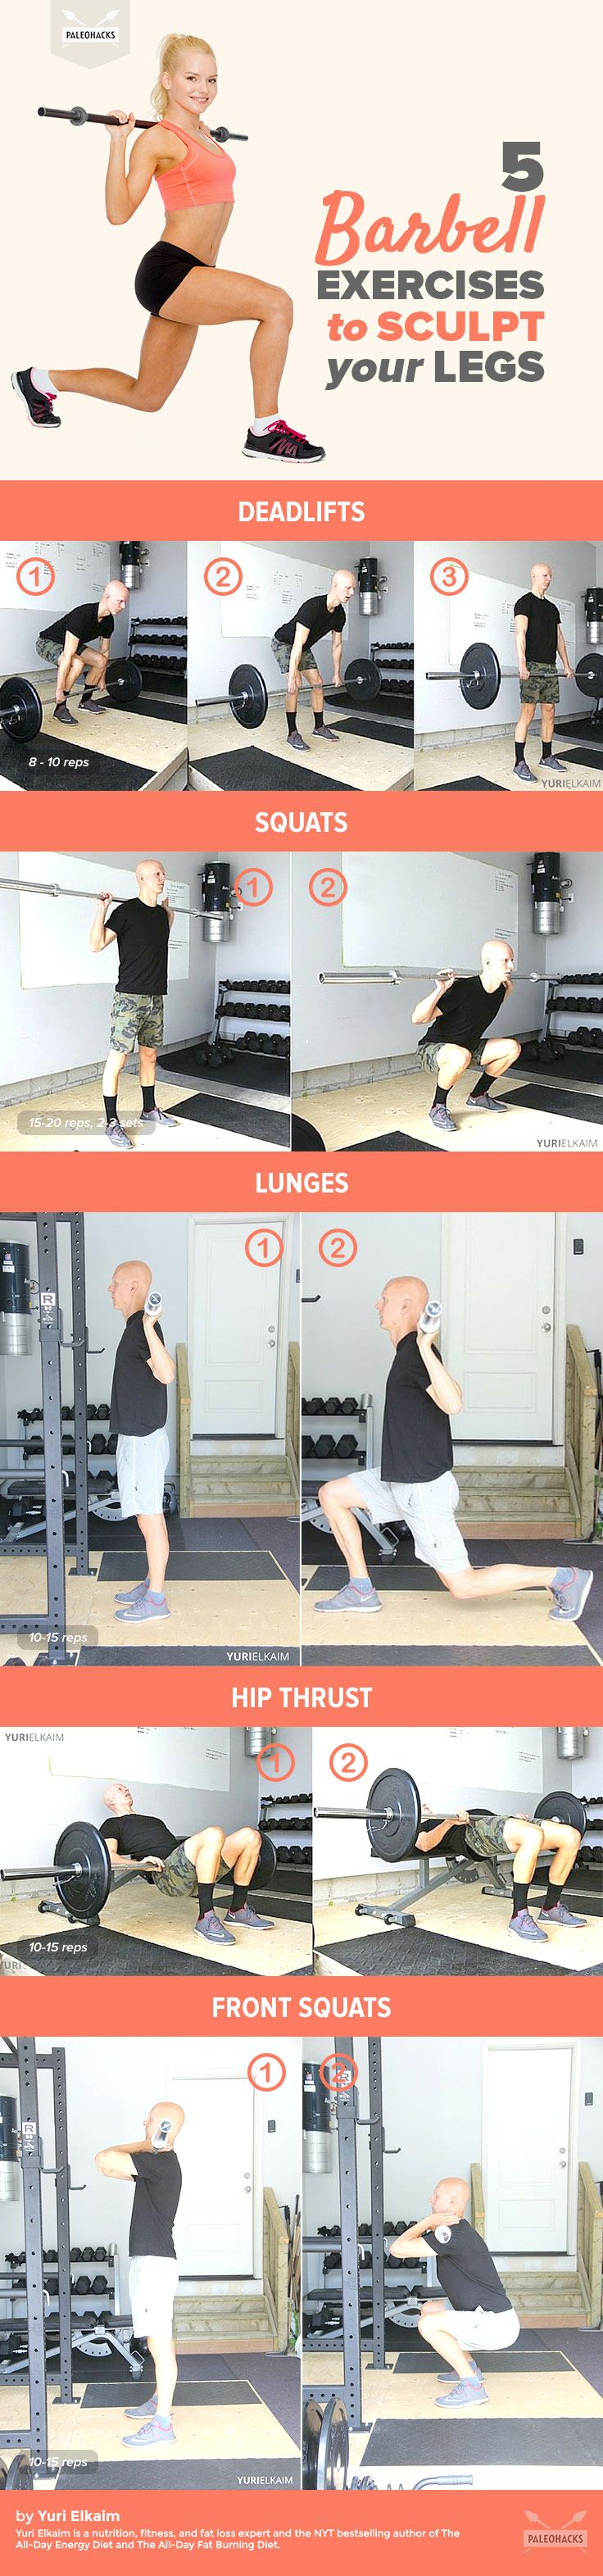 5 Barbell Exercises To Sculpt Your Legs Info